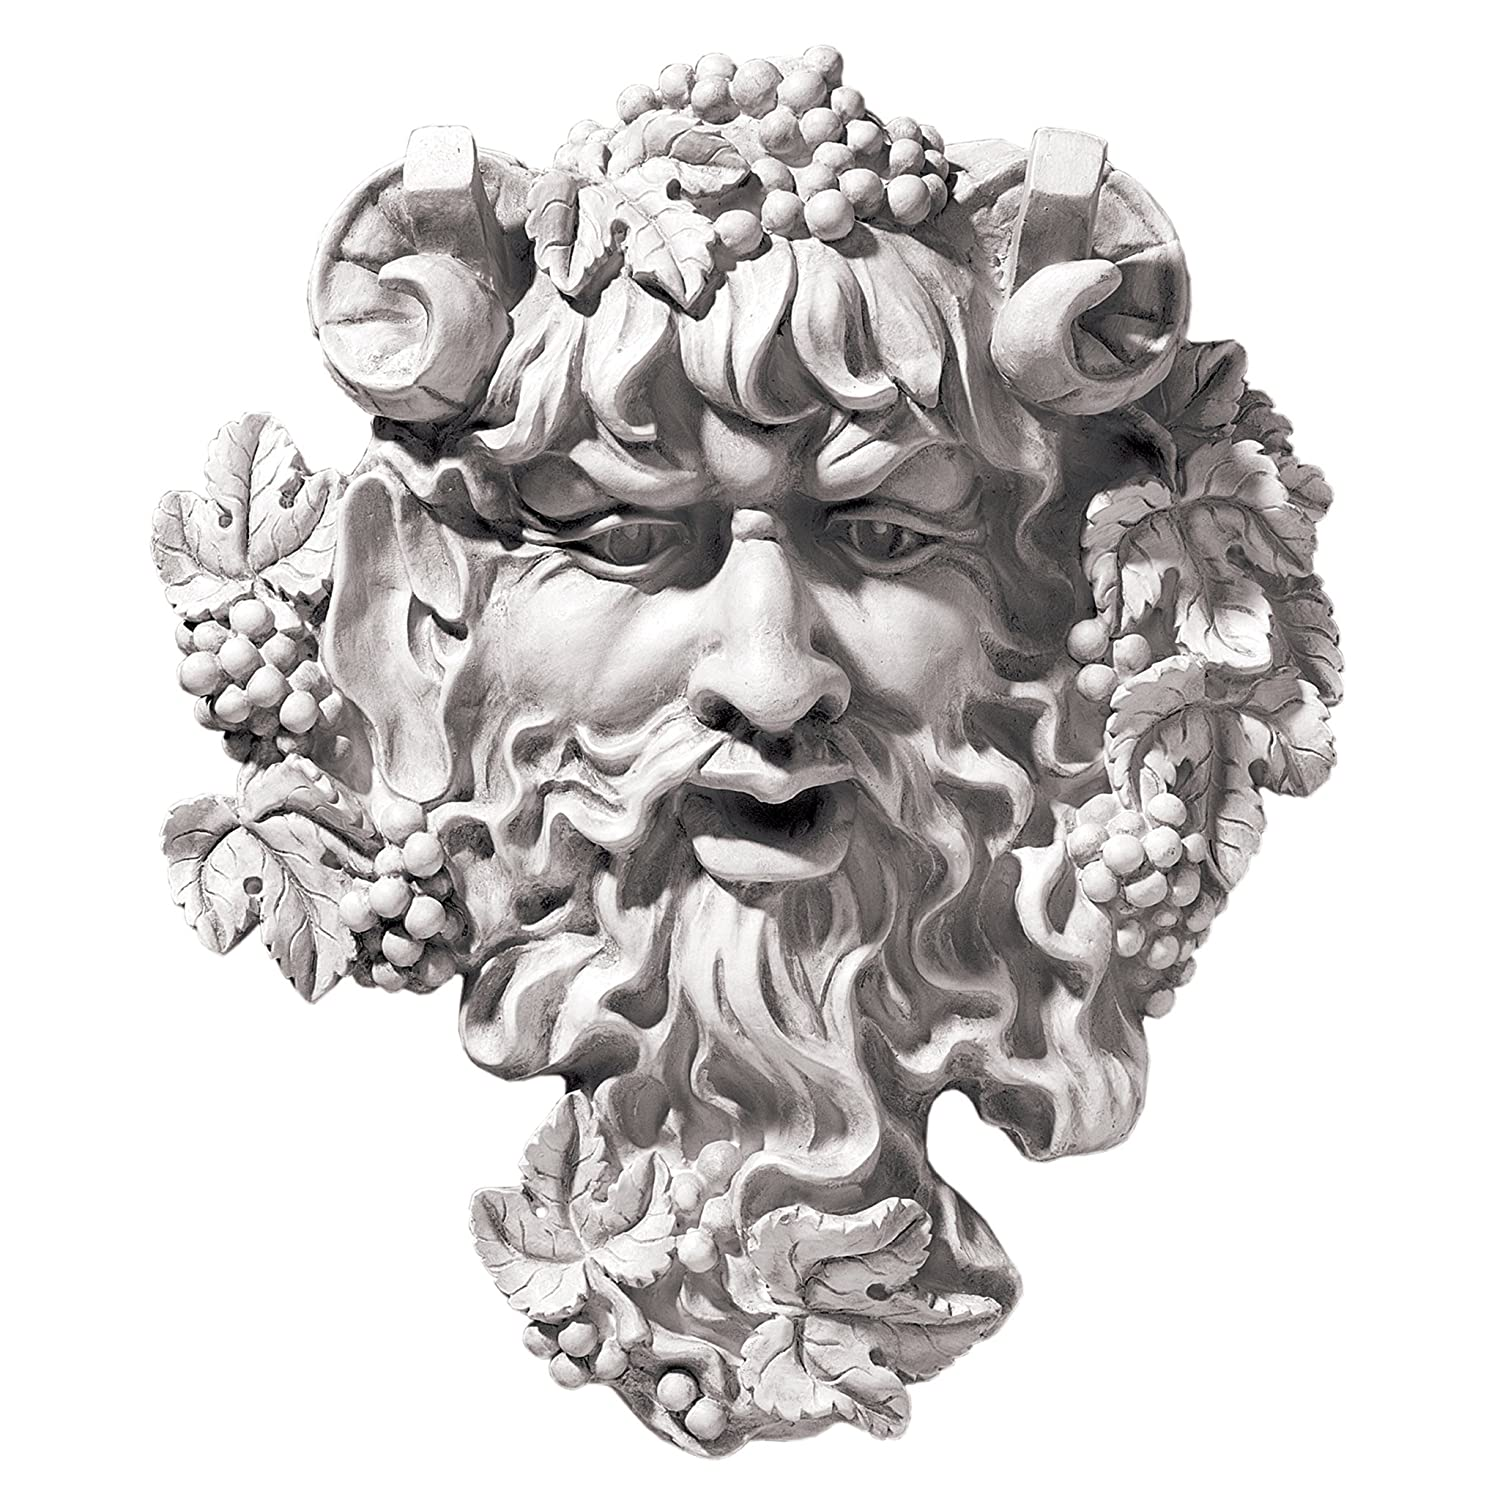 Metal garden wall art trellis black 163 29 99 this wall art is the - Amazon Com Design Toscano Bacchus God Of Wine Greenman Wall Sculpture In Antique Stone Wall Stickers Murals Patio Lawn Garden